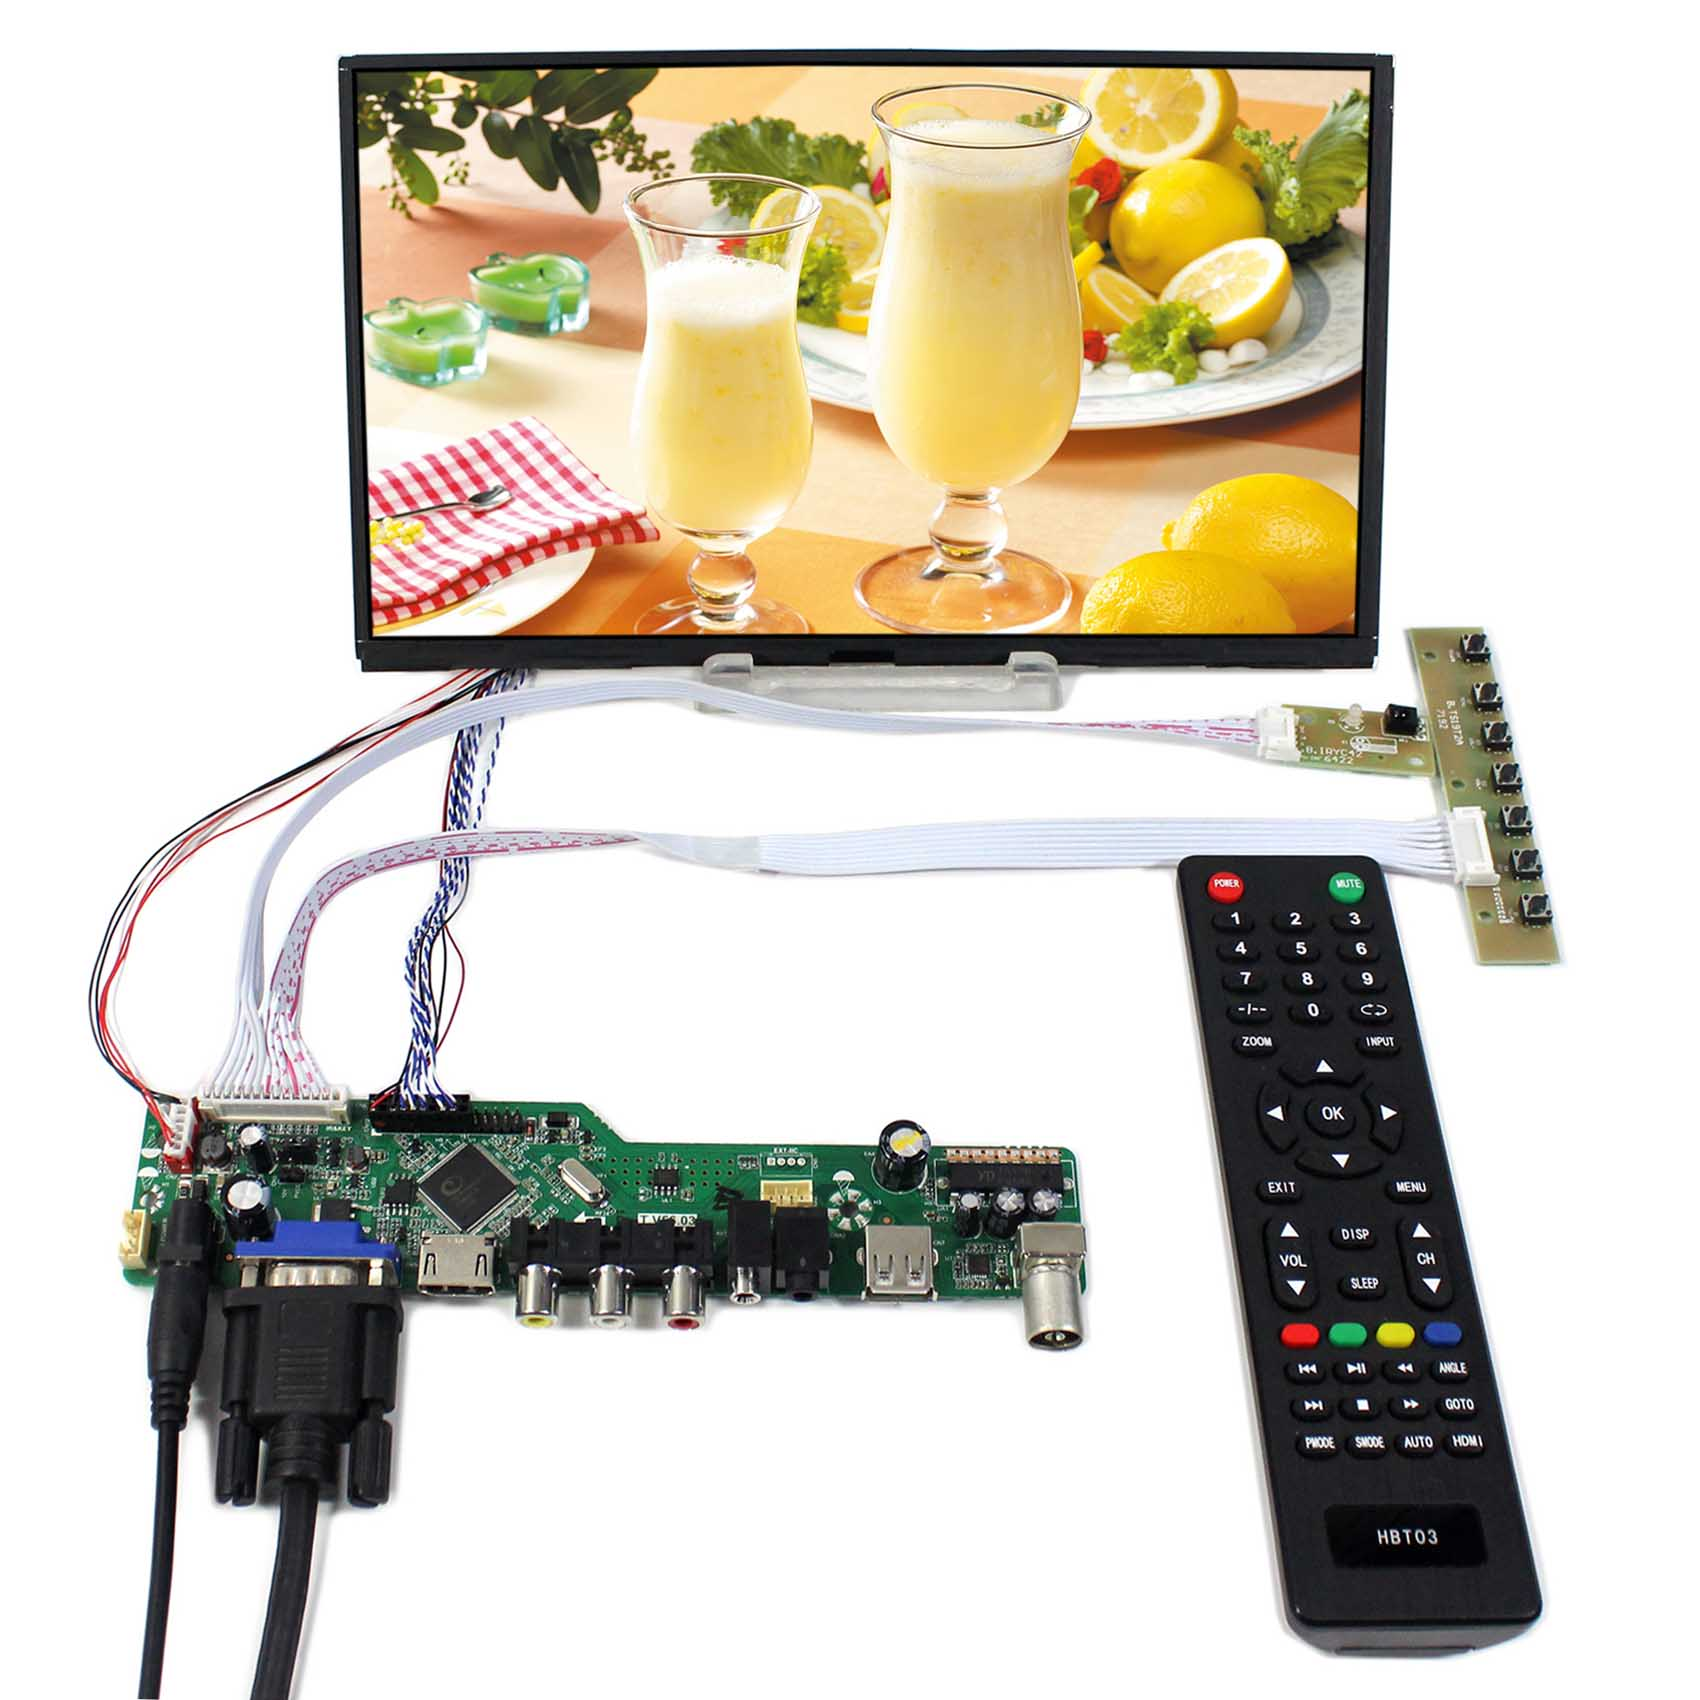 TV HDMI VGA AV USB AUDIO LCD controller Board+10.1inch B101XAN01 IPS lcd panel tv hdmi vga av usb audio lcd controller board 10 1b101aw06 1024x600 lcd screen